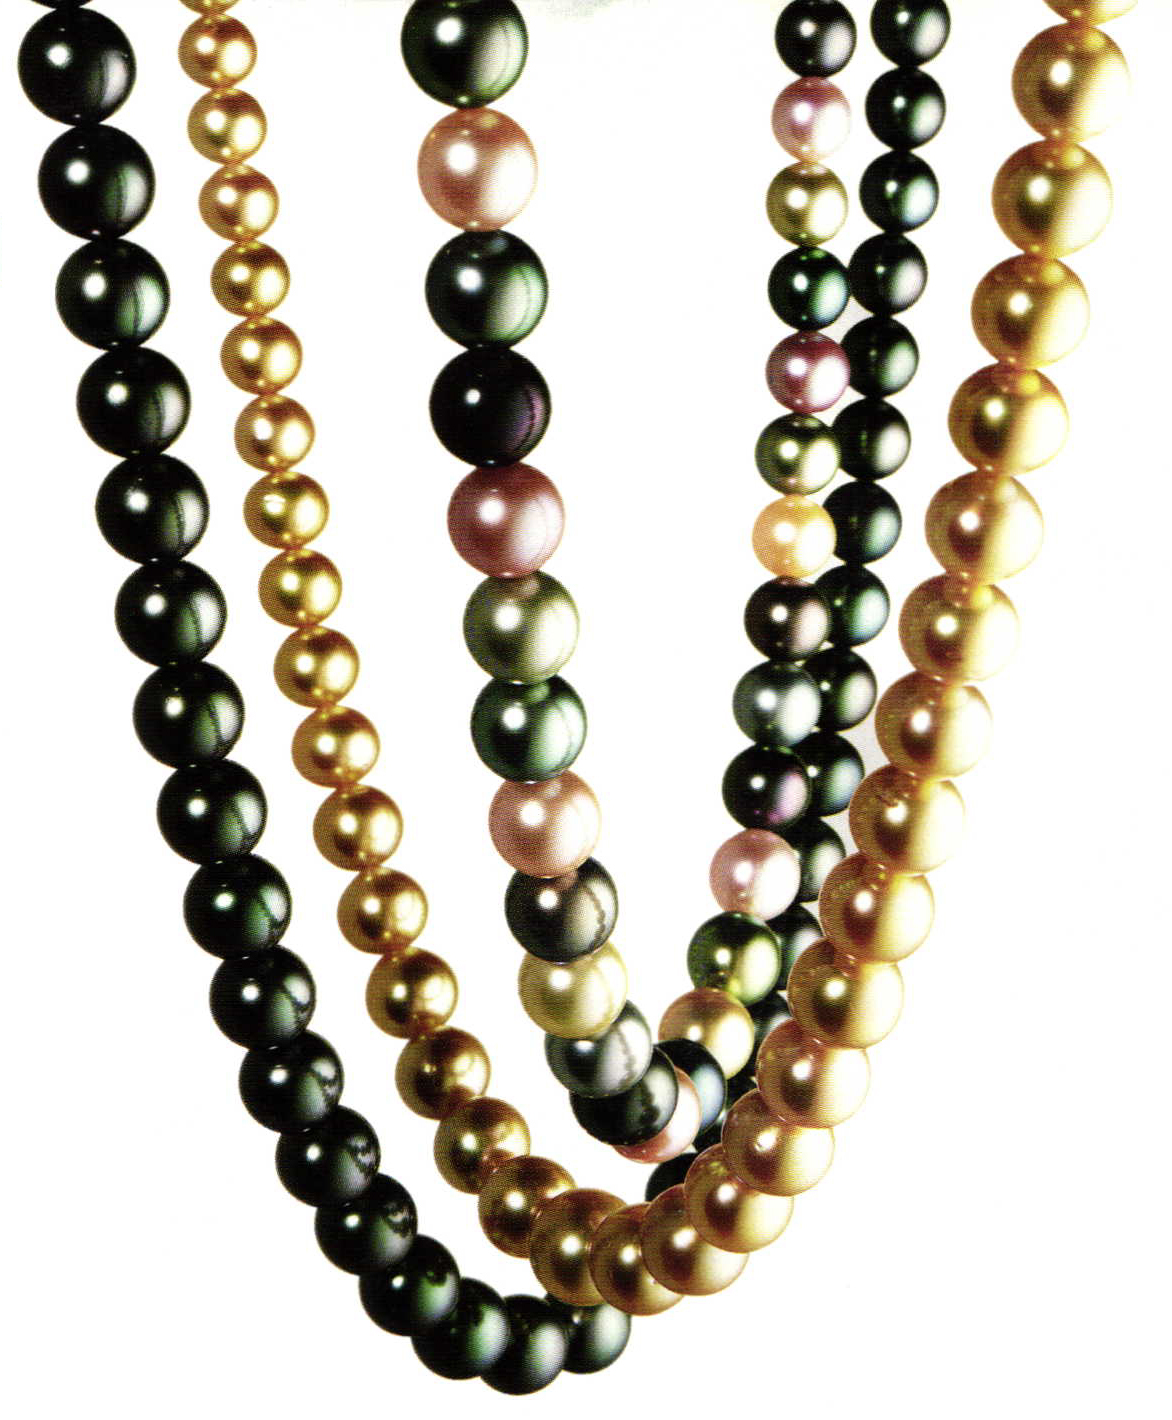 Schoeffel Is Among The Most Reble Companies Trading In Cultured Pearls World This Where A Tradition Of Successful Entrepreneurship